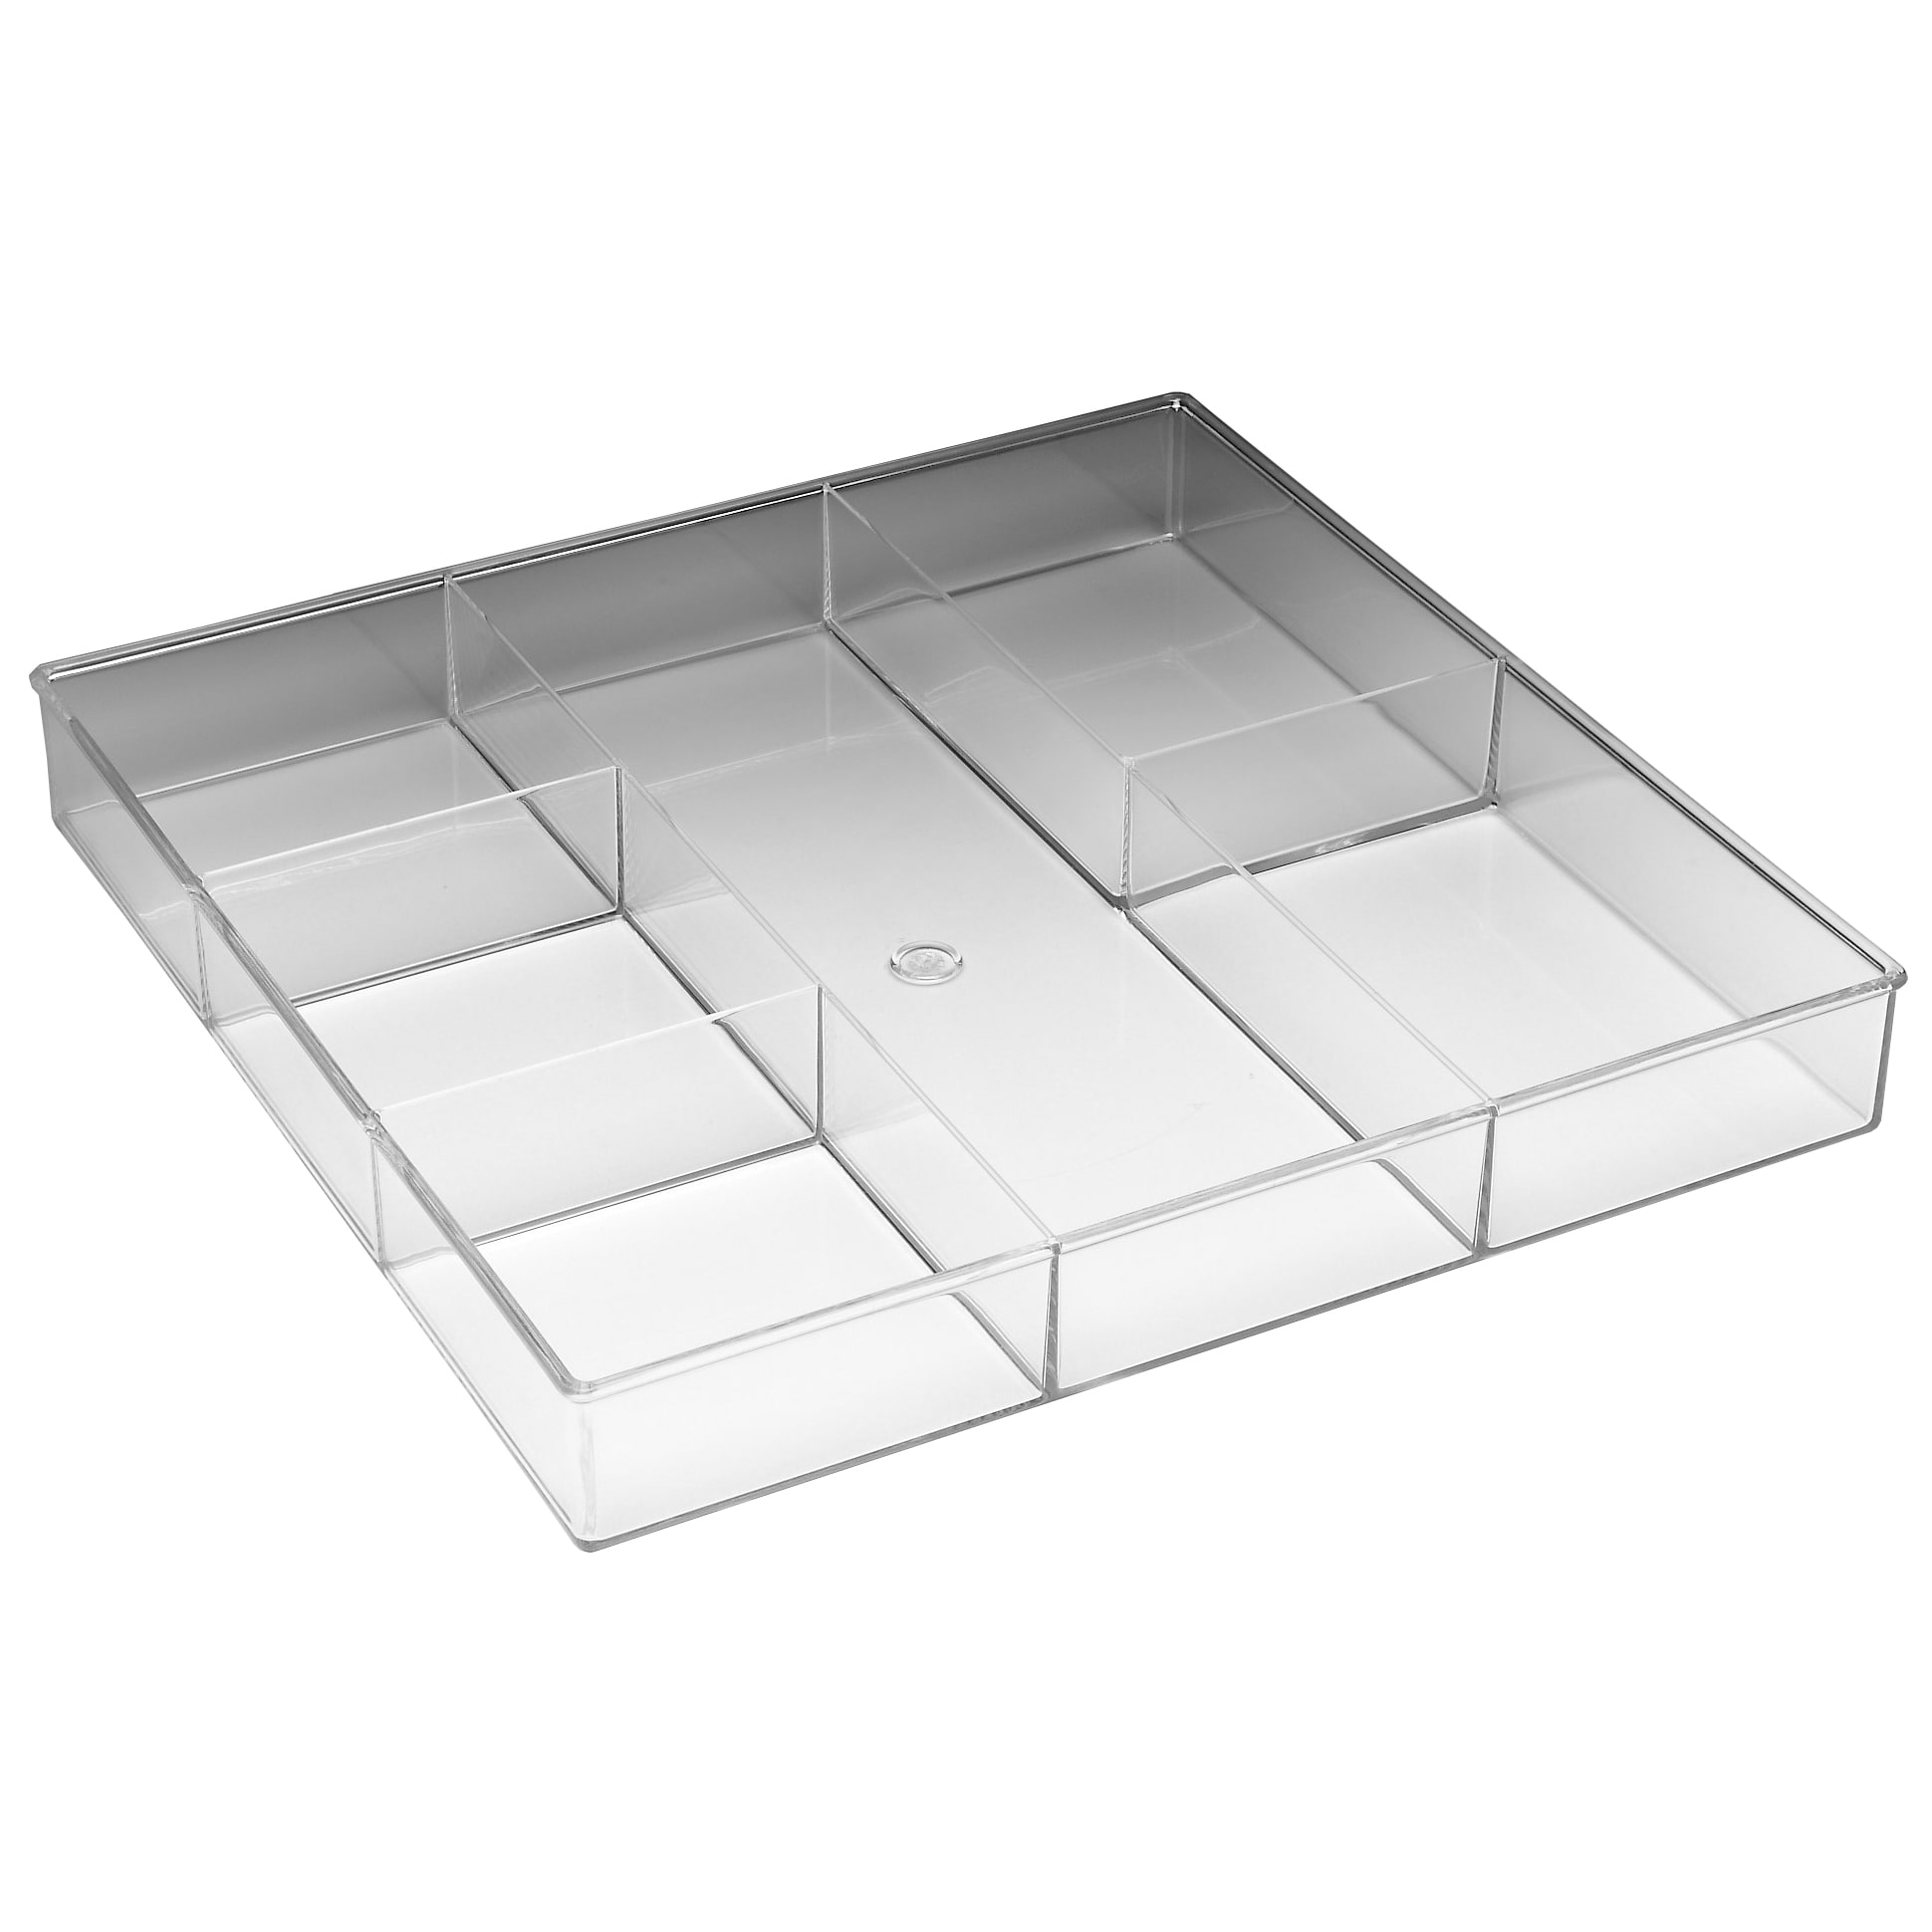 Shop Whitmor 6789-3065 6 Section Clear Drawer Organizer - Free ...